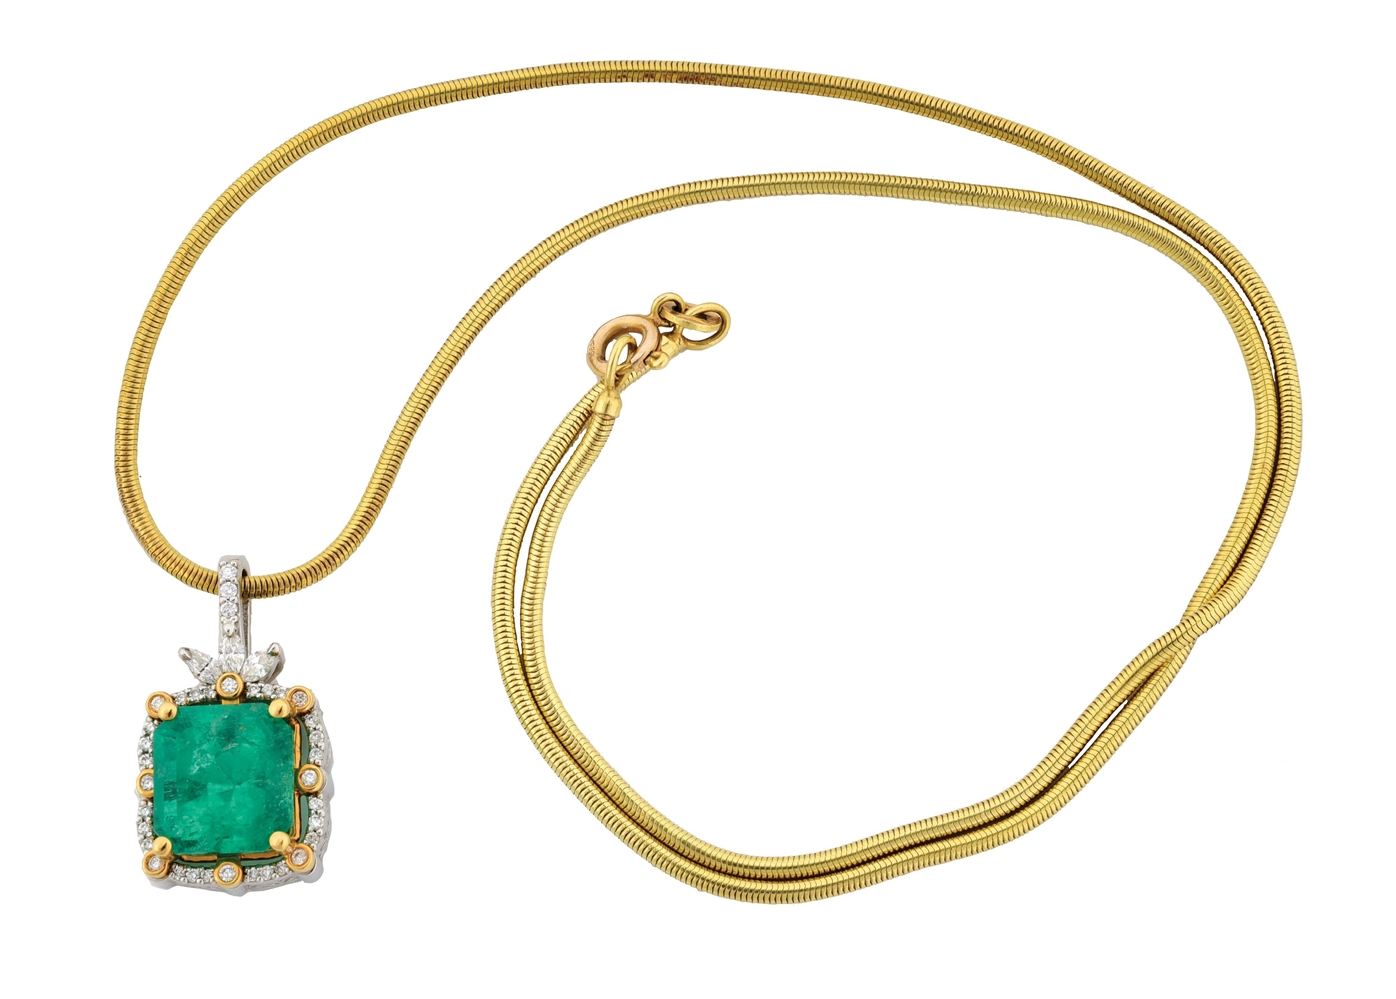 LADYS PLATINUM & 18K GOLD EMERALD & DIAMOND PENDANT WITH 14K SNAKE CHAIN AND APPRAISAL.